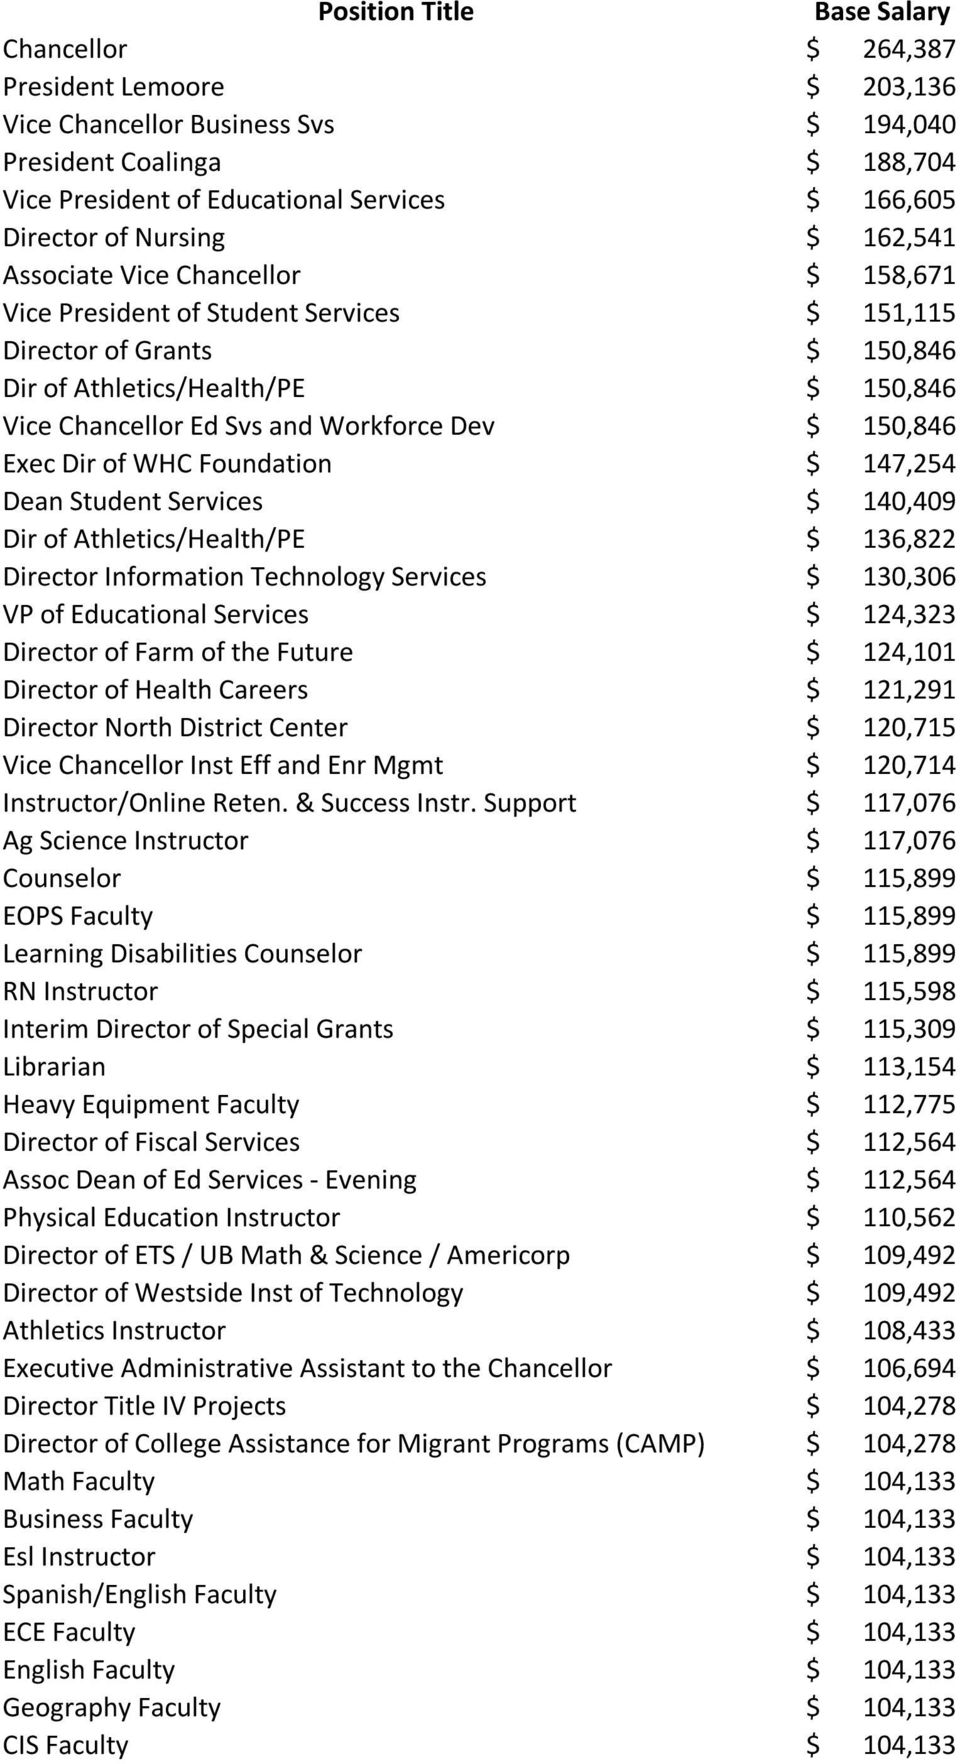 and Workforce Dev $ 150,846 Exec Dir of WHC Foundation $ 147,254 Dean Student Services $ 140,409 Dir of Athletics/Health/PE $ 136,822 Director Information Technology Services $ 130,306 VP of